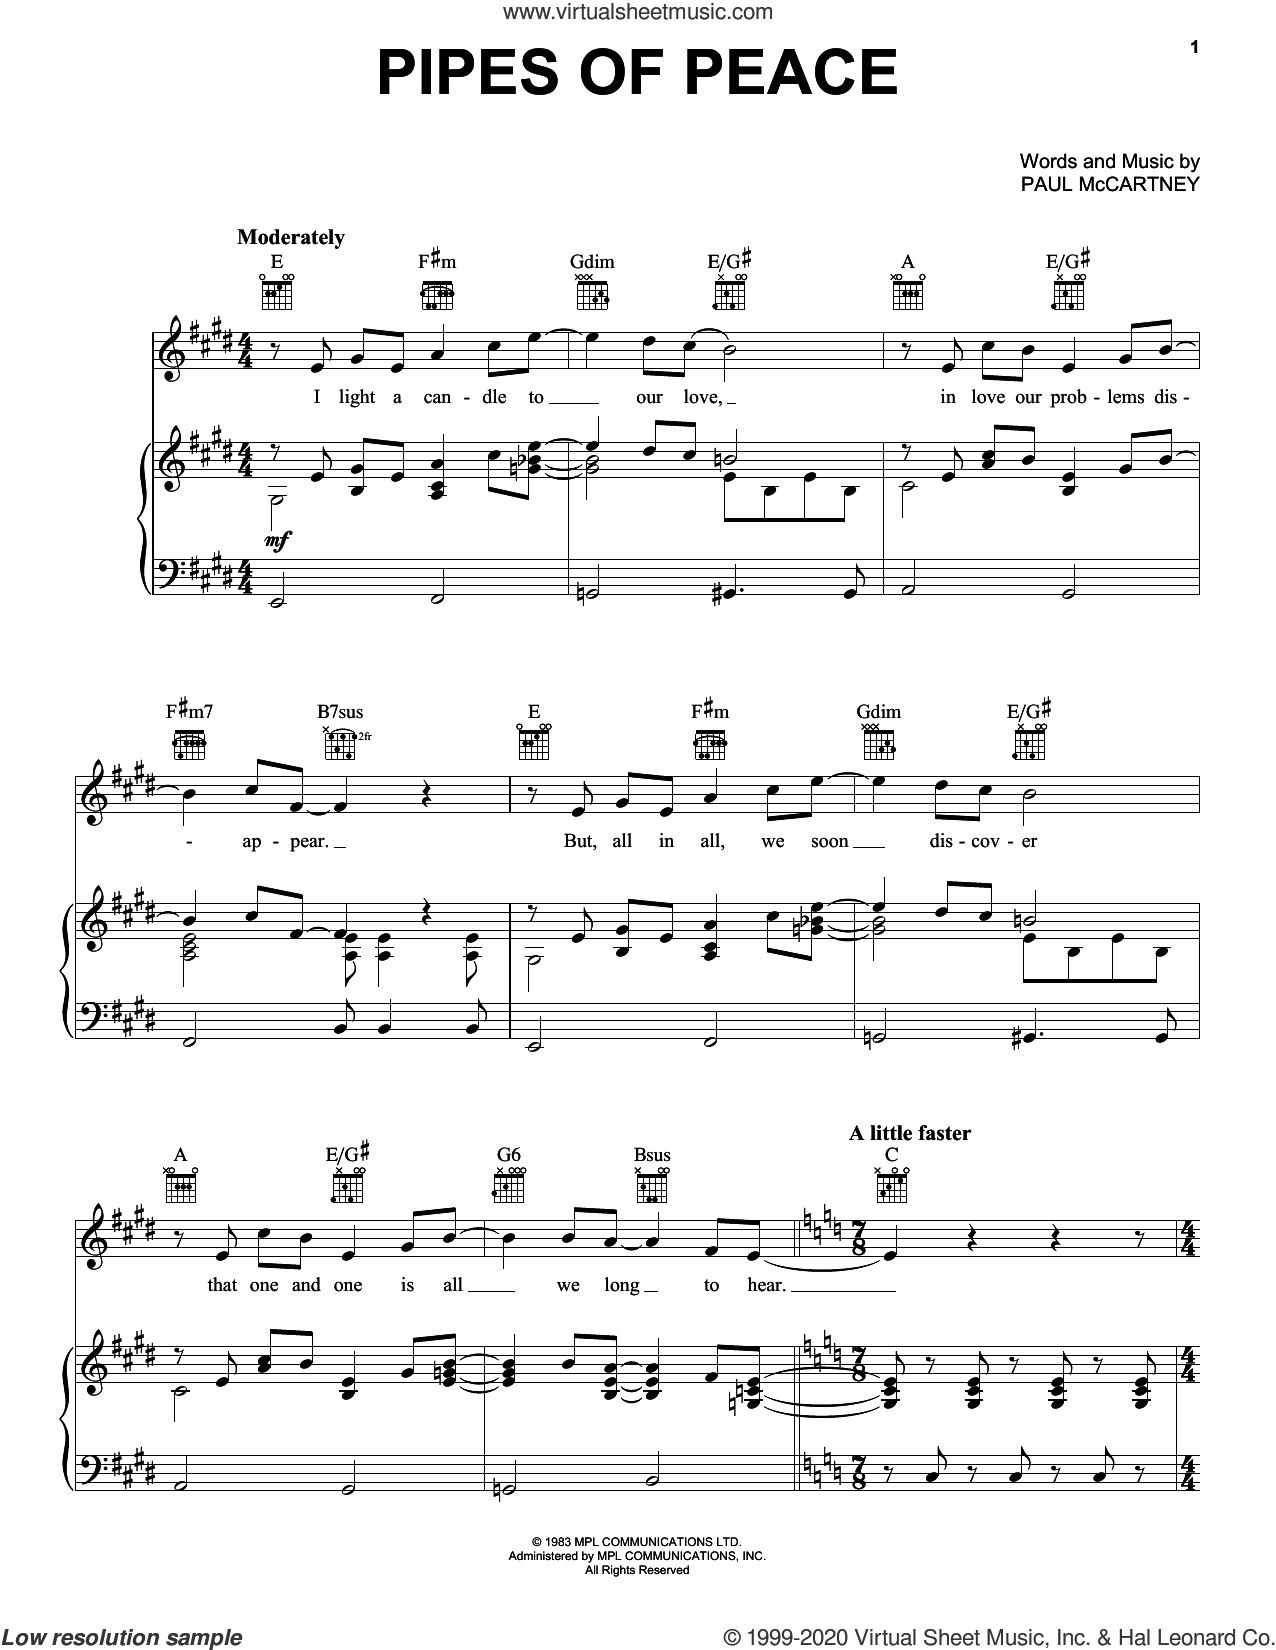 Pipes Of Peace sheet music for voice, piano or guitar by Paul McCartney, intermediate skill level